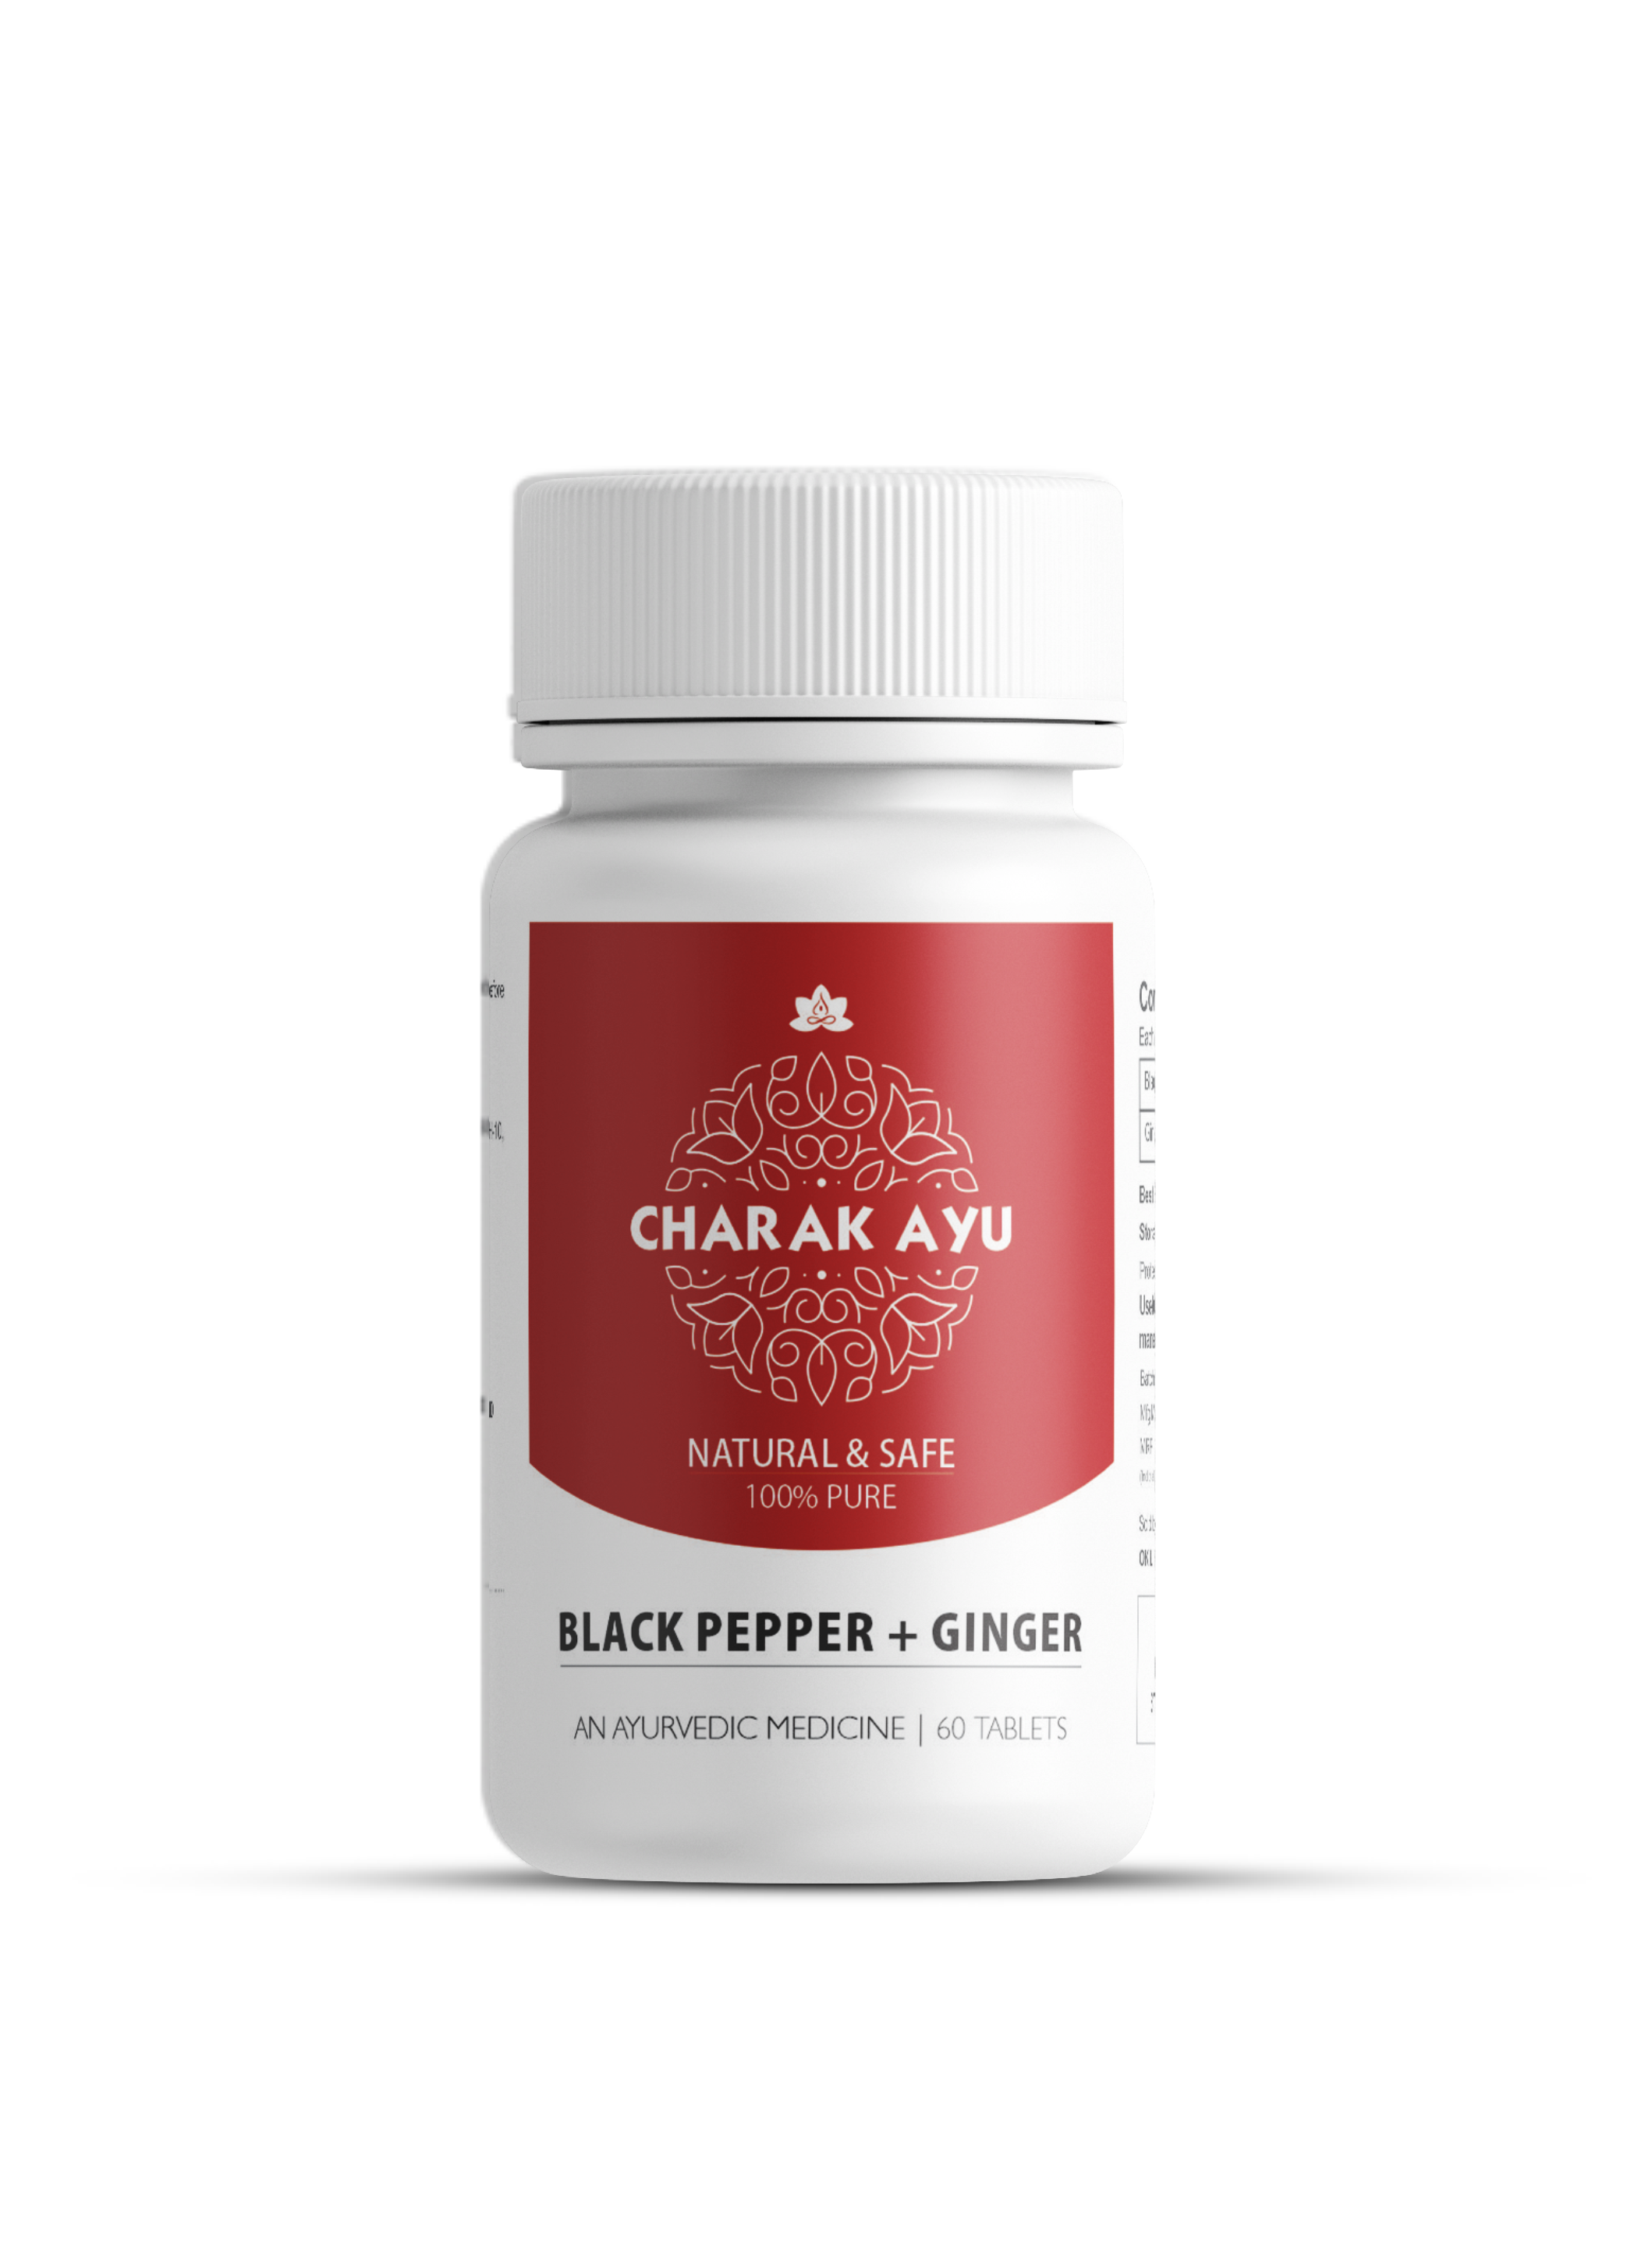 BLACK PEPPER+GINGER